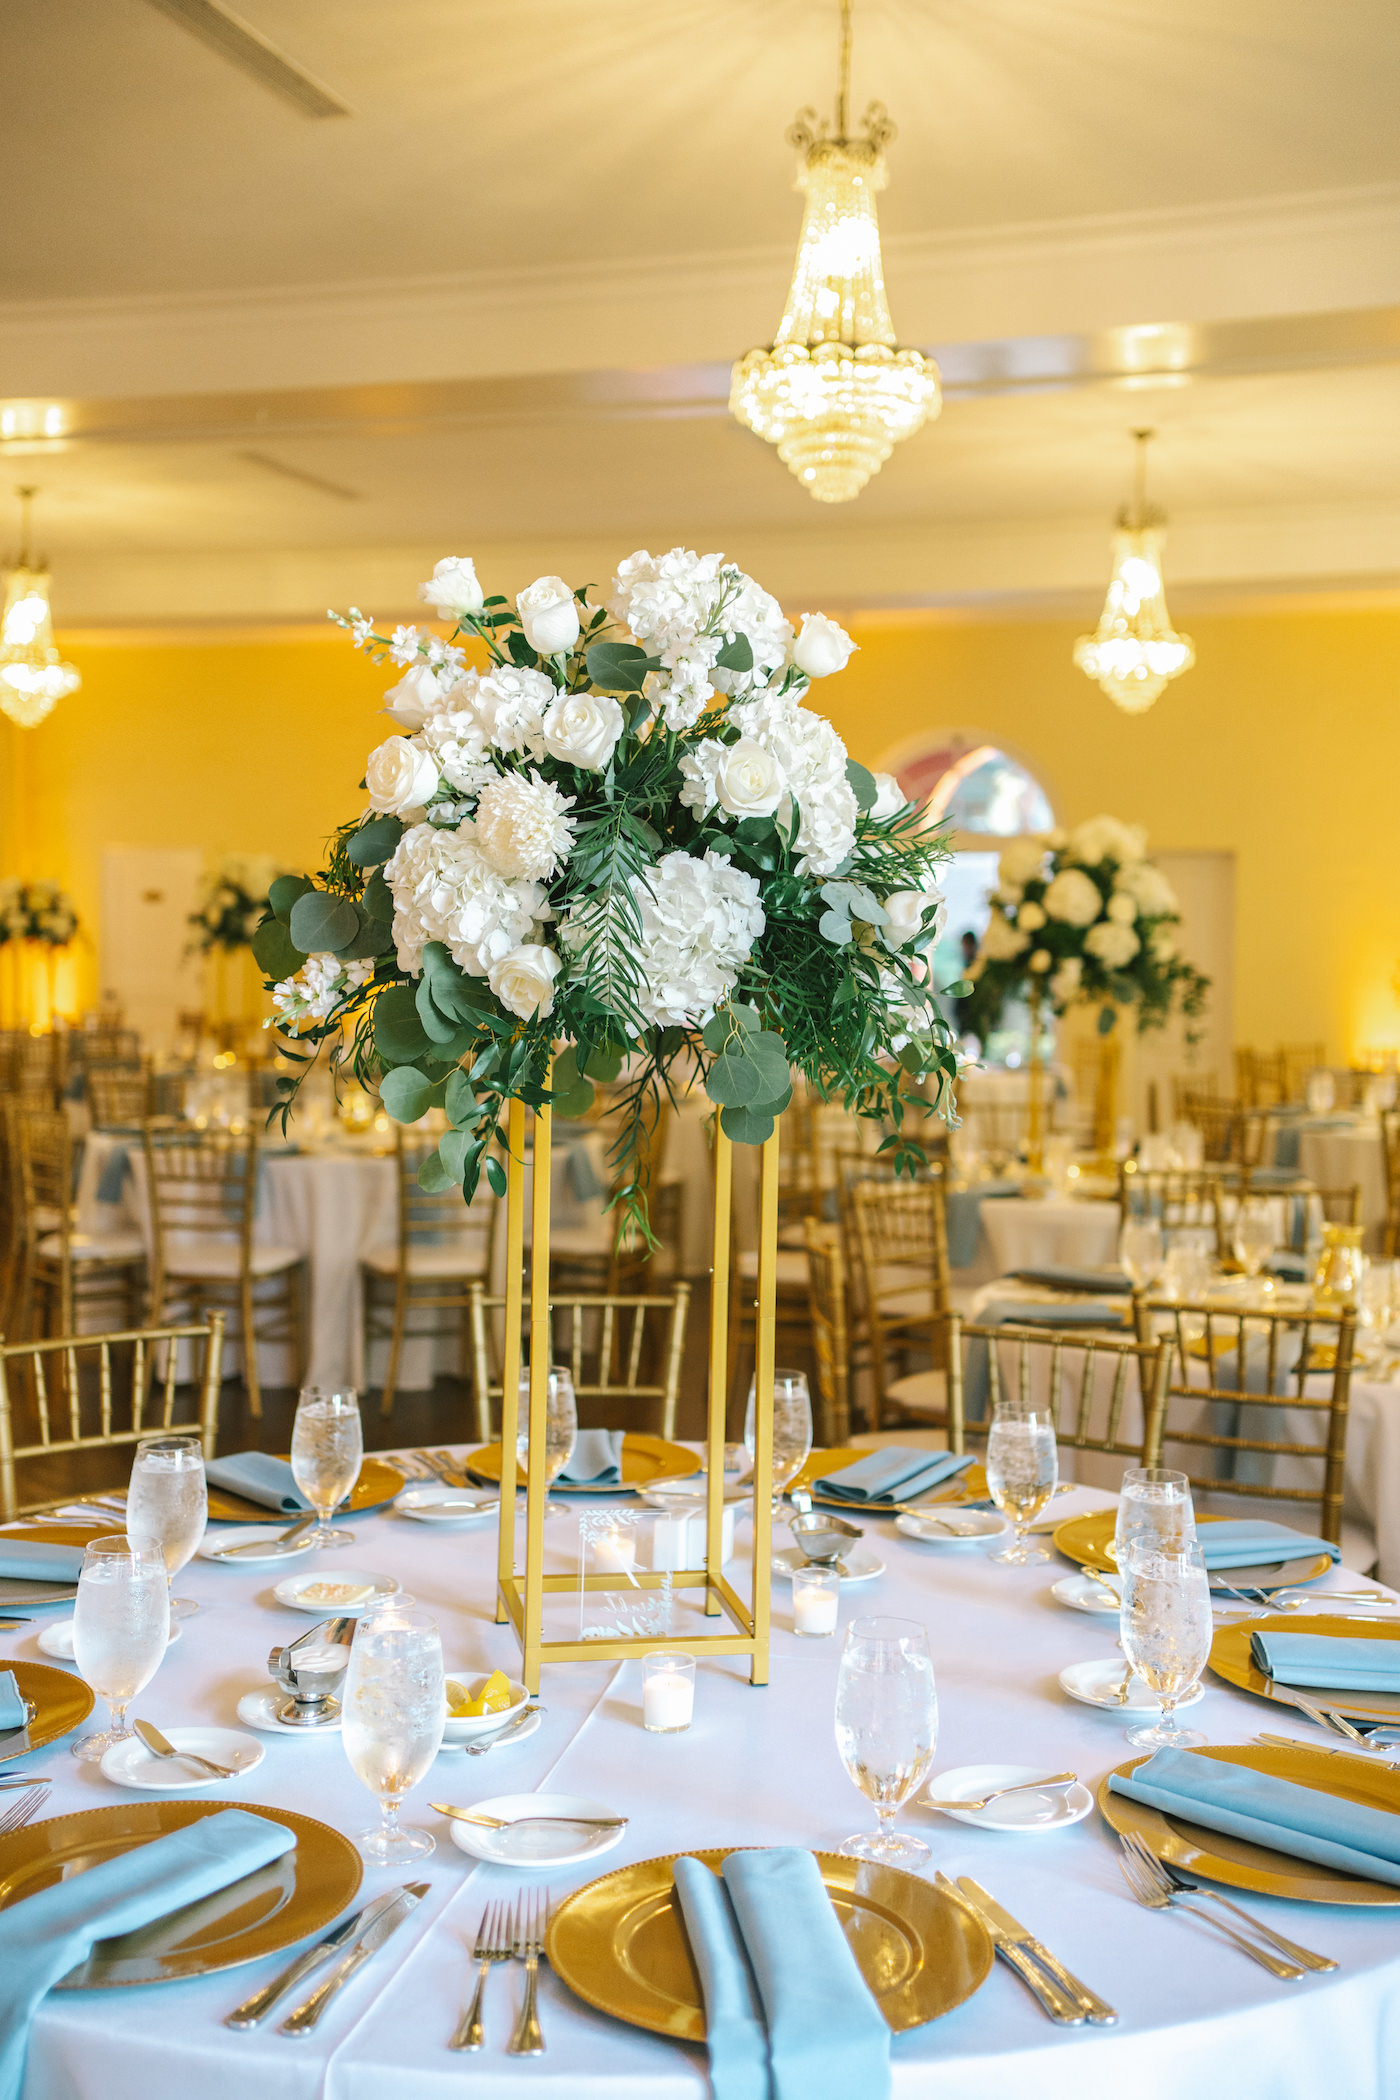 Classic Elegant Wedding Reception Decor Tall Modern Geometric Gold Stand With Lush White Hydrangeas Roses And Greenery Eucalyptus Centerpiece Gold Chargers With Dusty Blue Linen Napkins Tampa Bay Wedding Photographer Kera